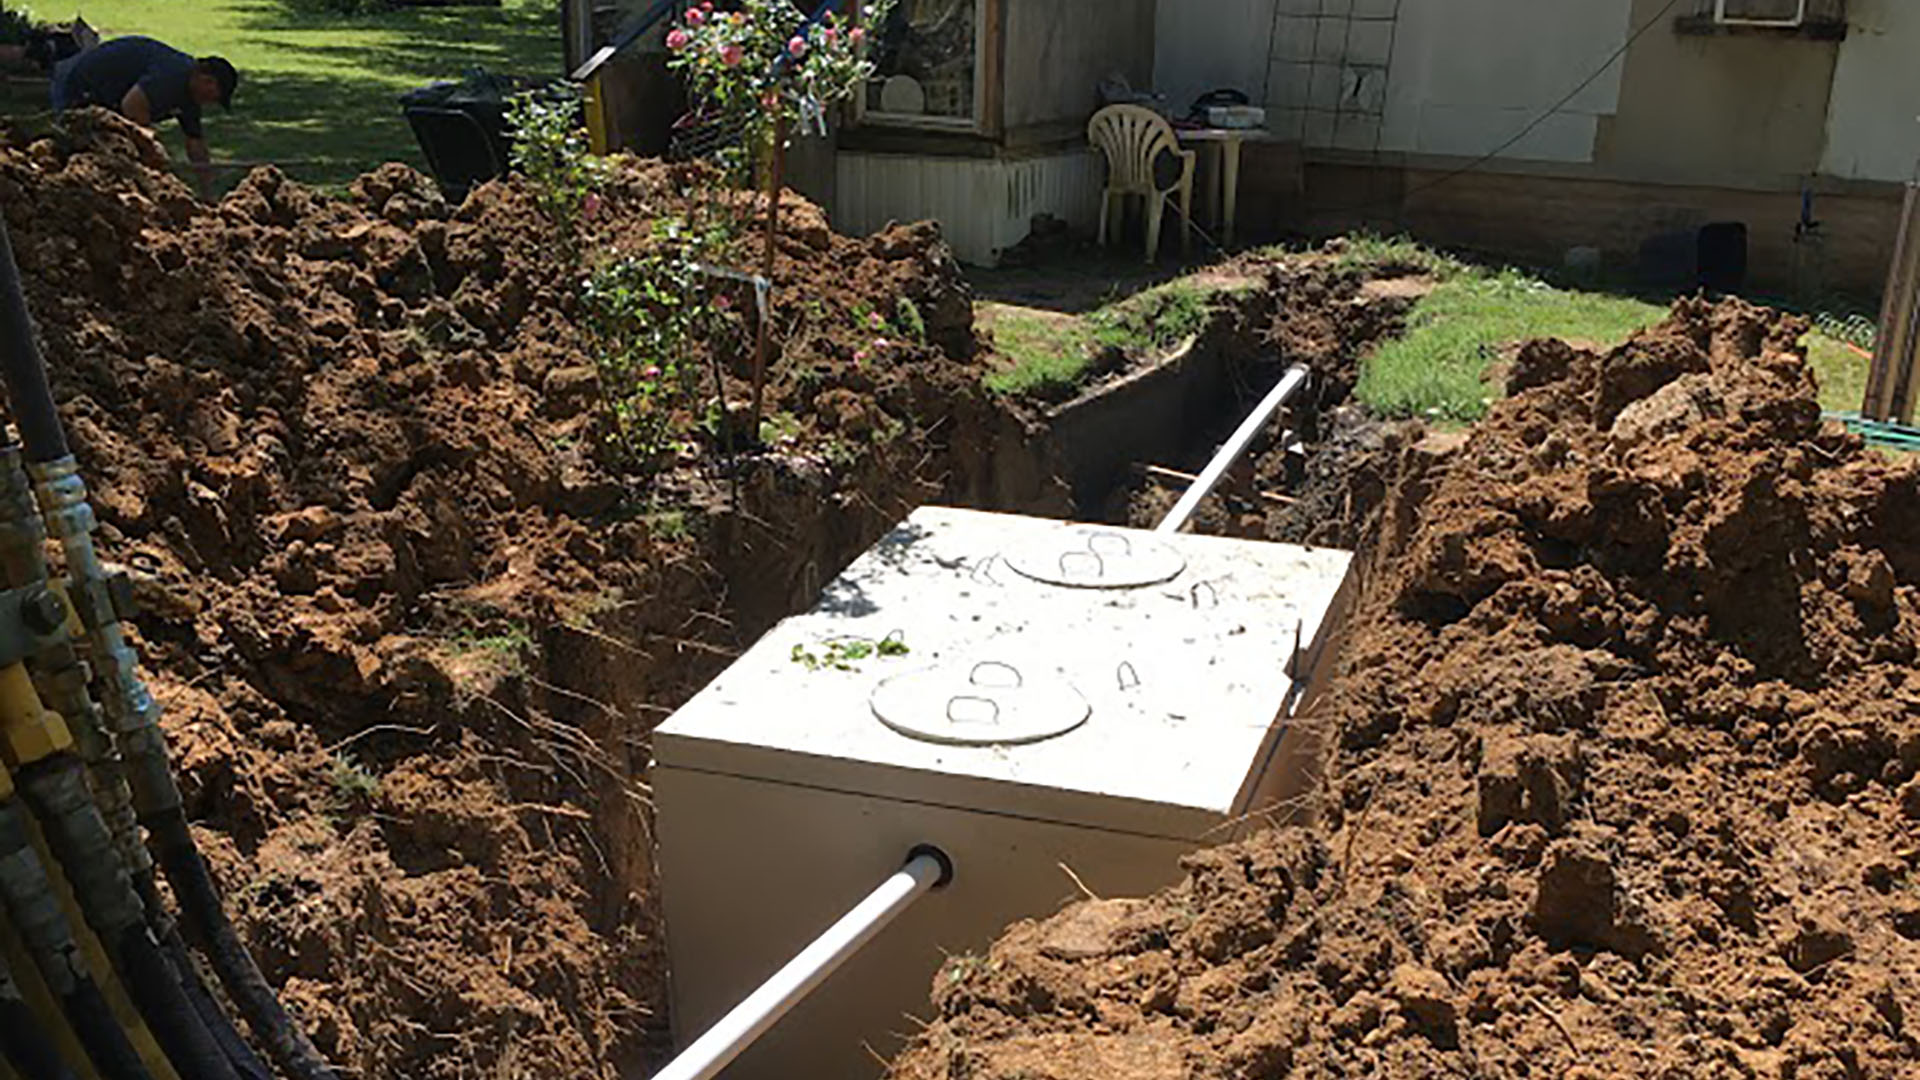 Selmer Septic Pumps, Portable Restrooms and Septic Installs